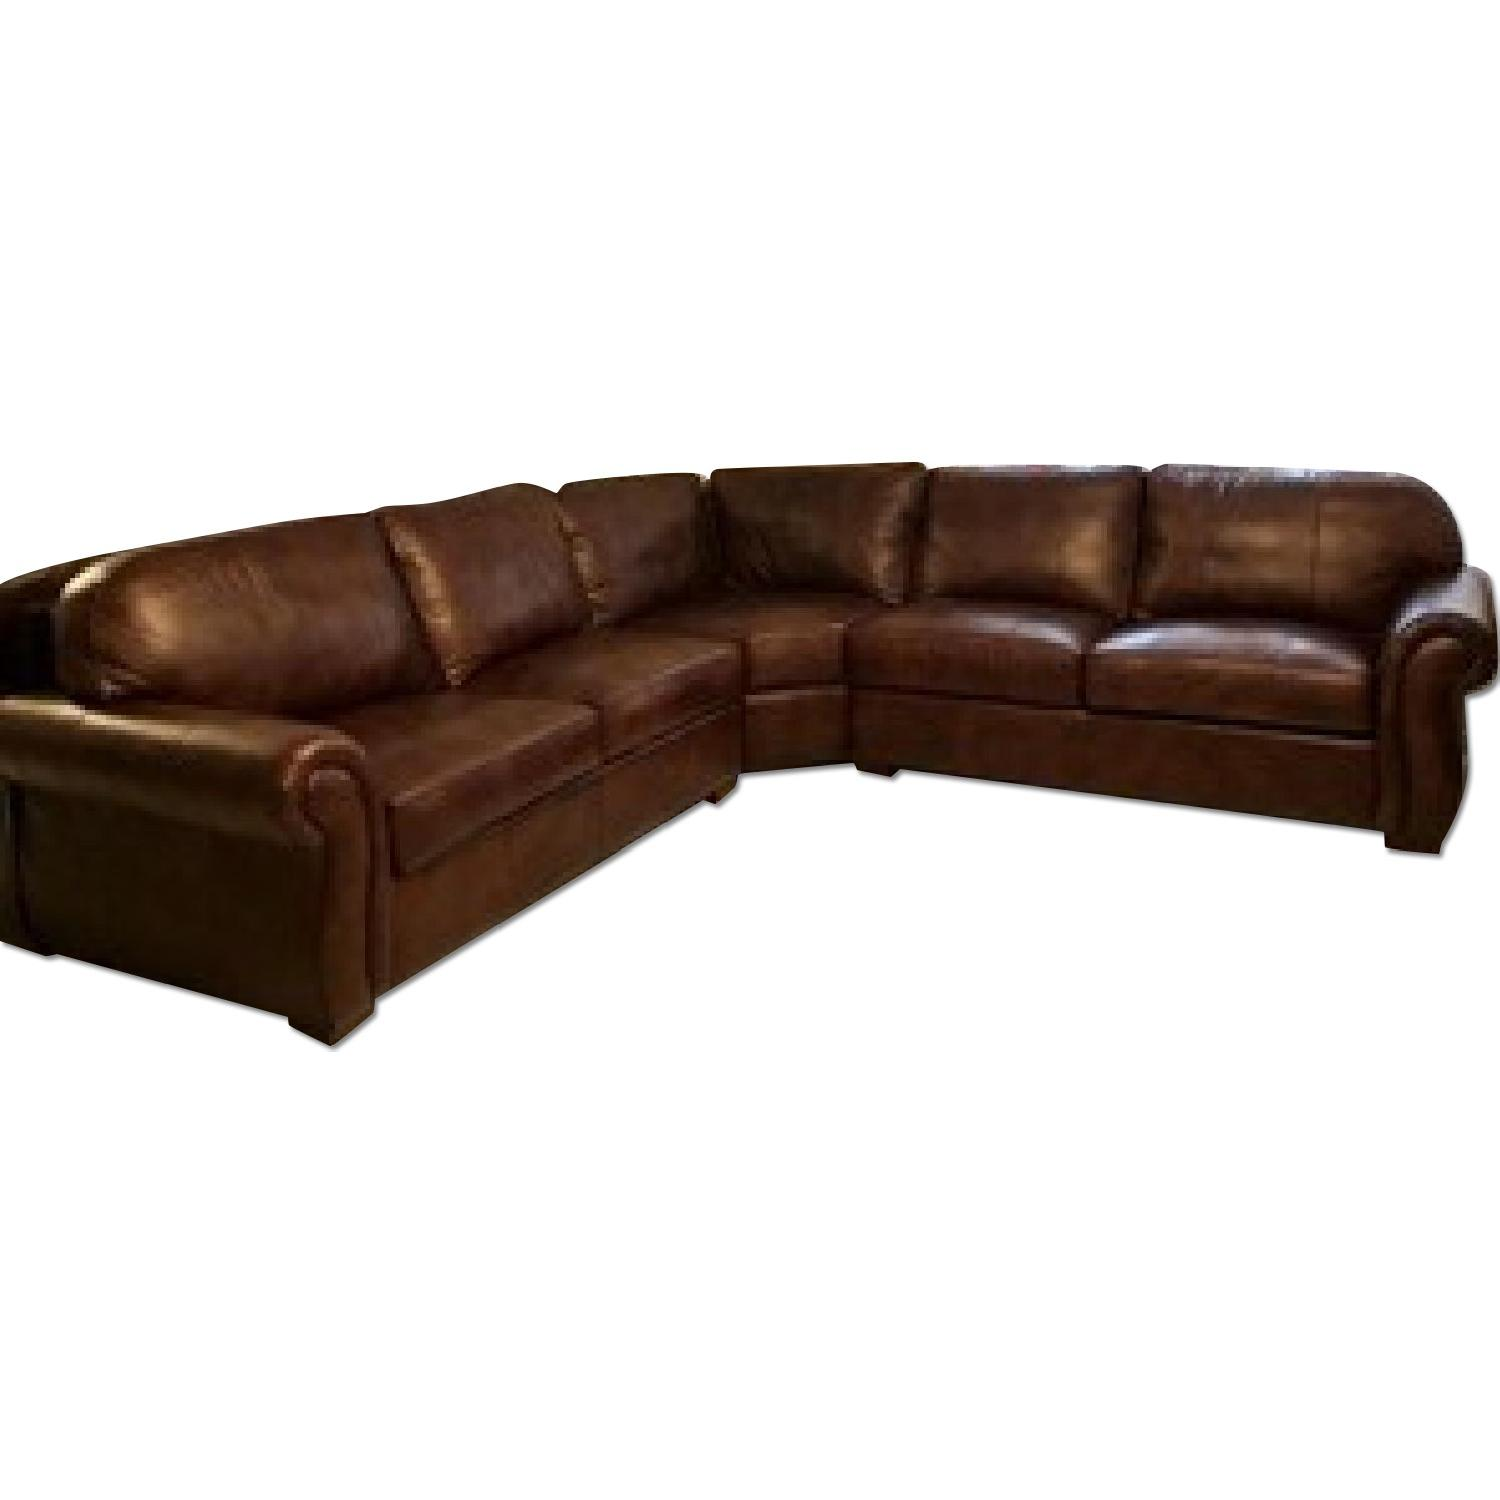 Raymour & Flanigan Emery 3-Piece Leather Sectional - image-0